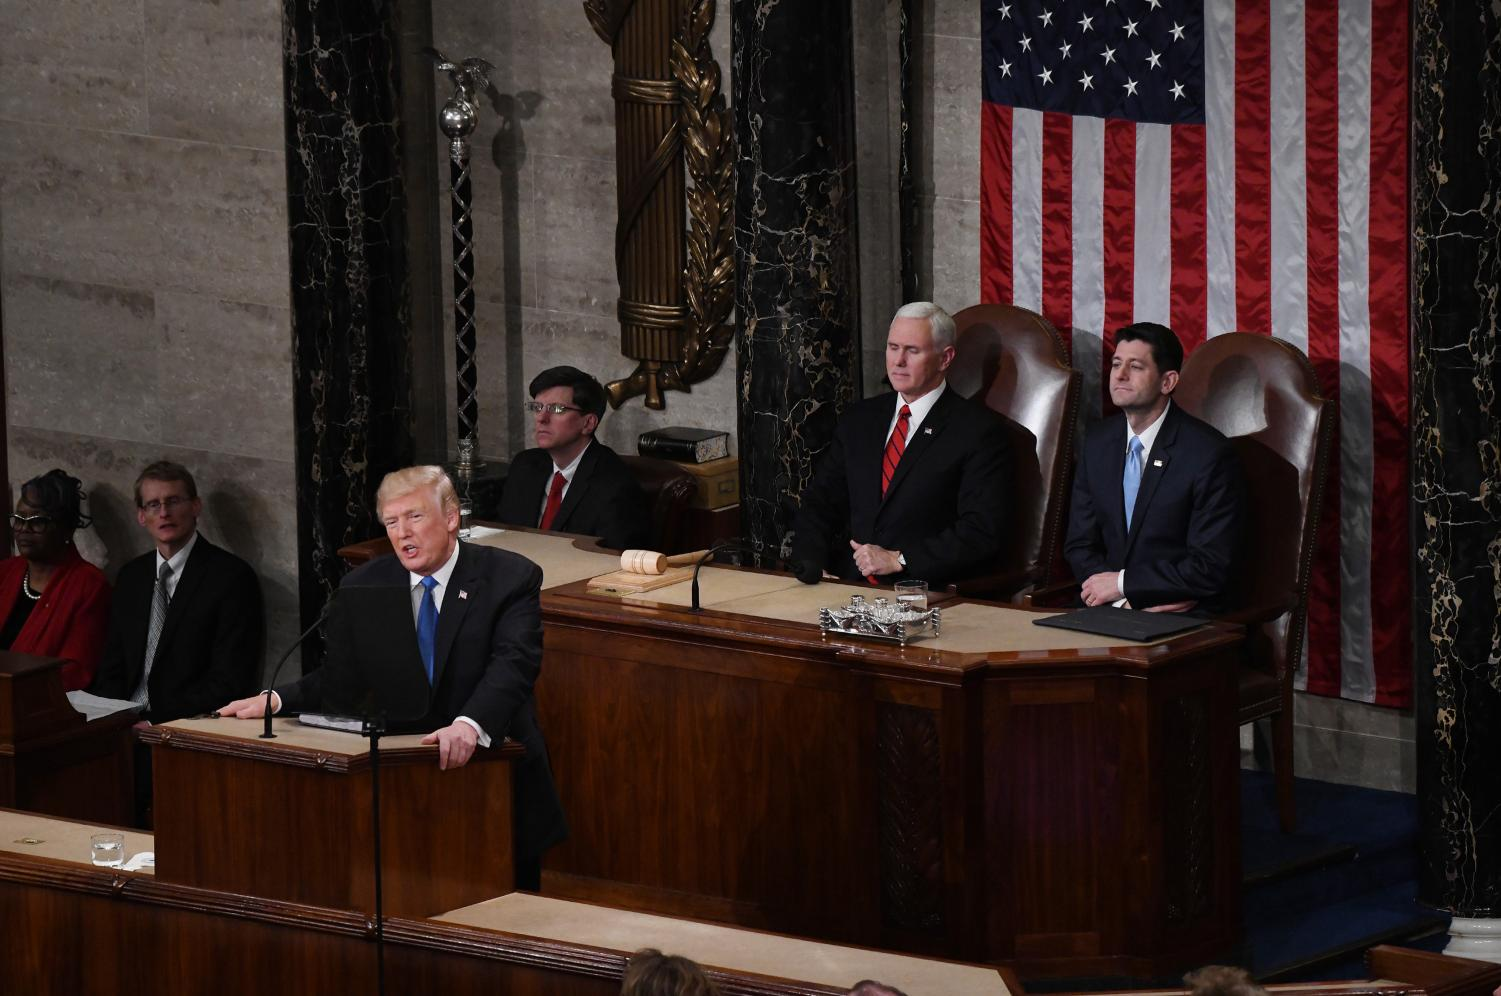 President Donald Trump delivers his State of the Union address, and  Vice President Mike Pence and Speaker of the House of Representatives Paul Ryan sit behind him. (PHOTO COURTESY OF Tribune News Service)